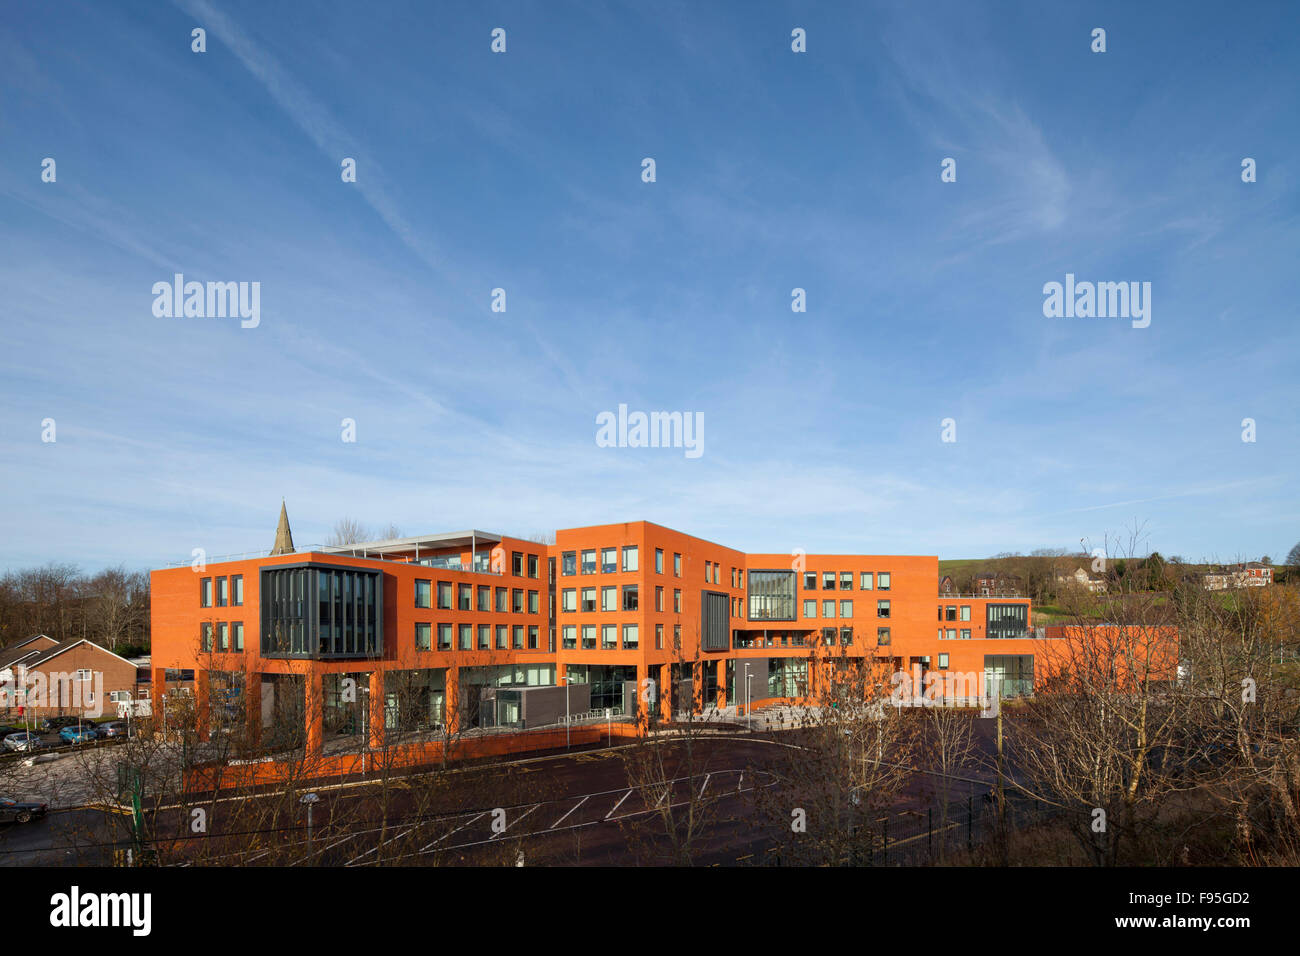 Waterhead Academy, Oldham. Distant view of the exterior of the Waterhead Academy. - Stock Image